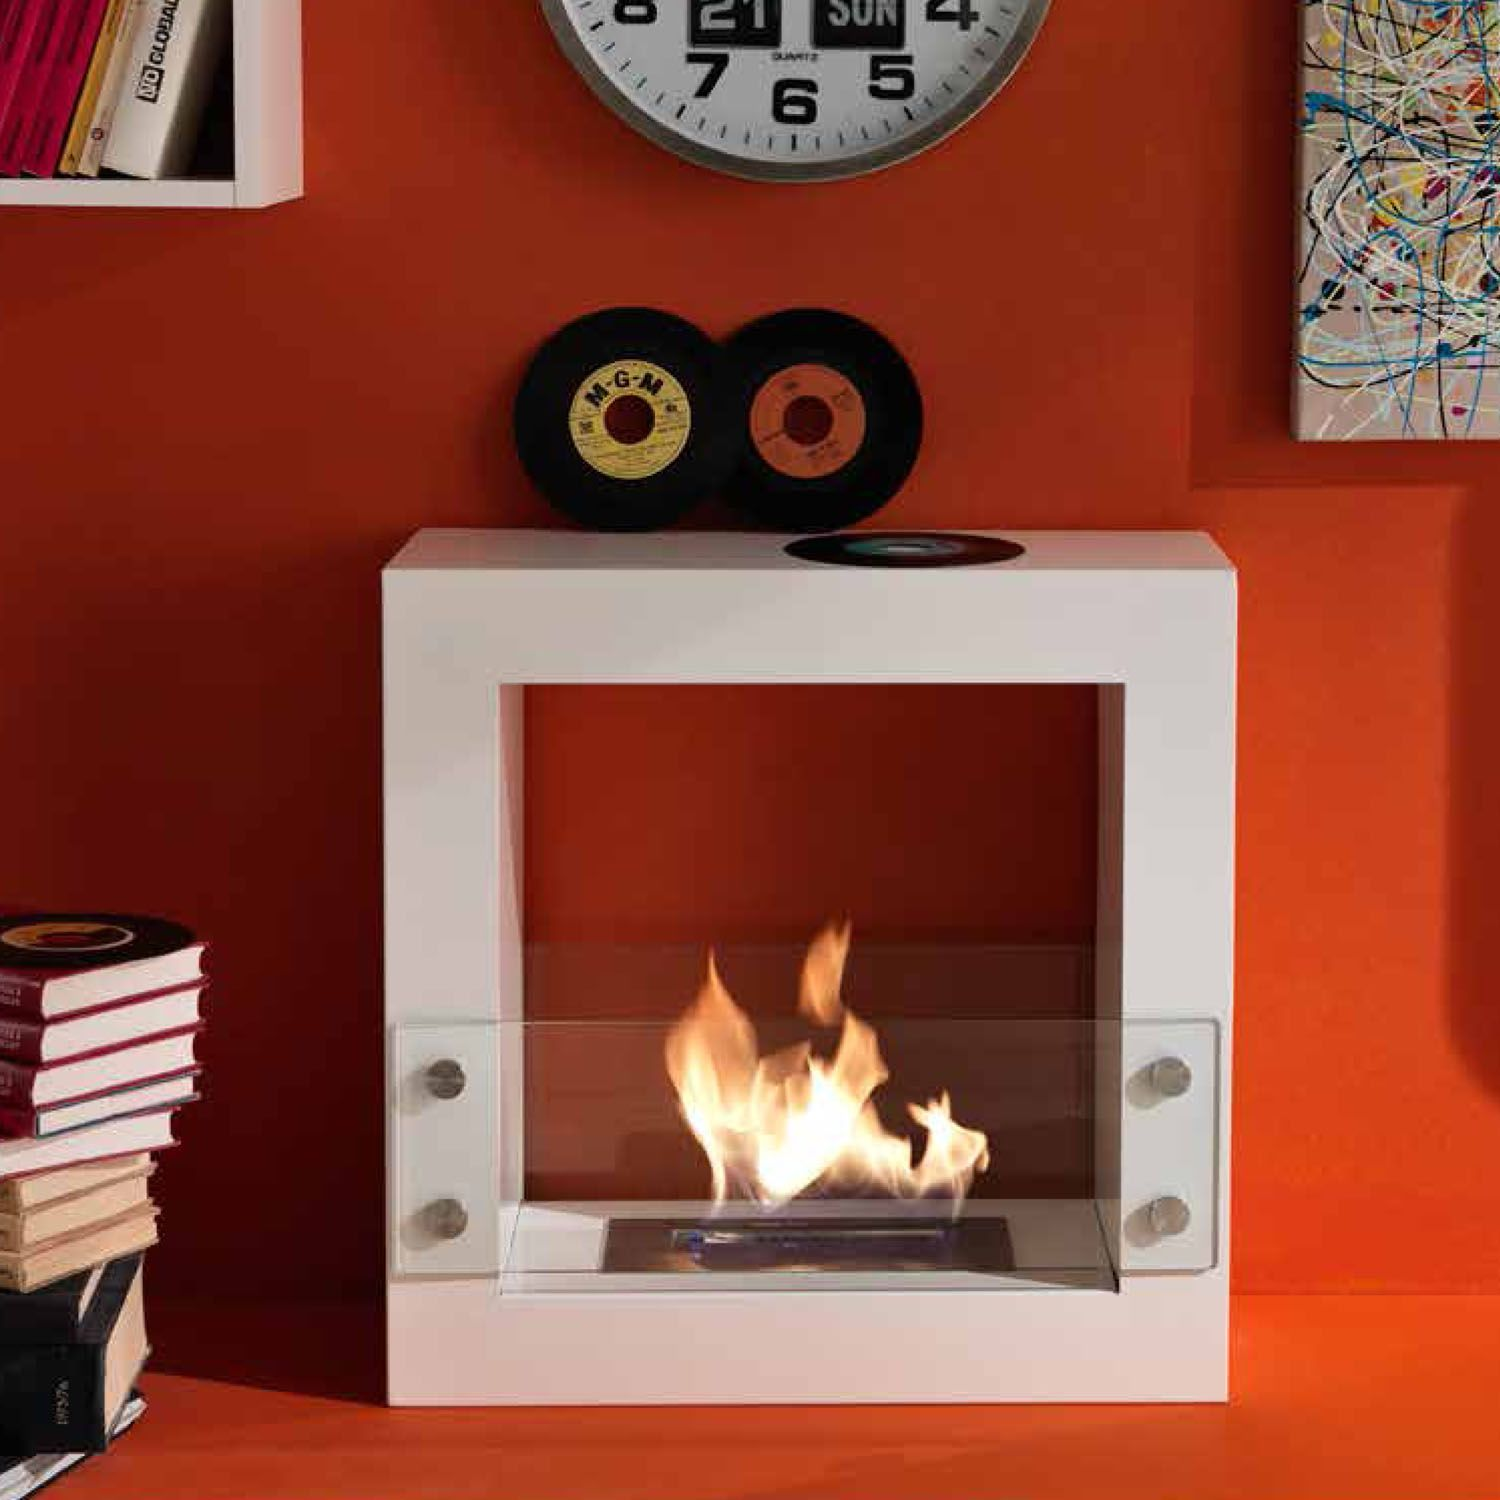 stylish povable bioethanol fireplace with a burner 1500 ml at my